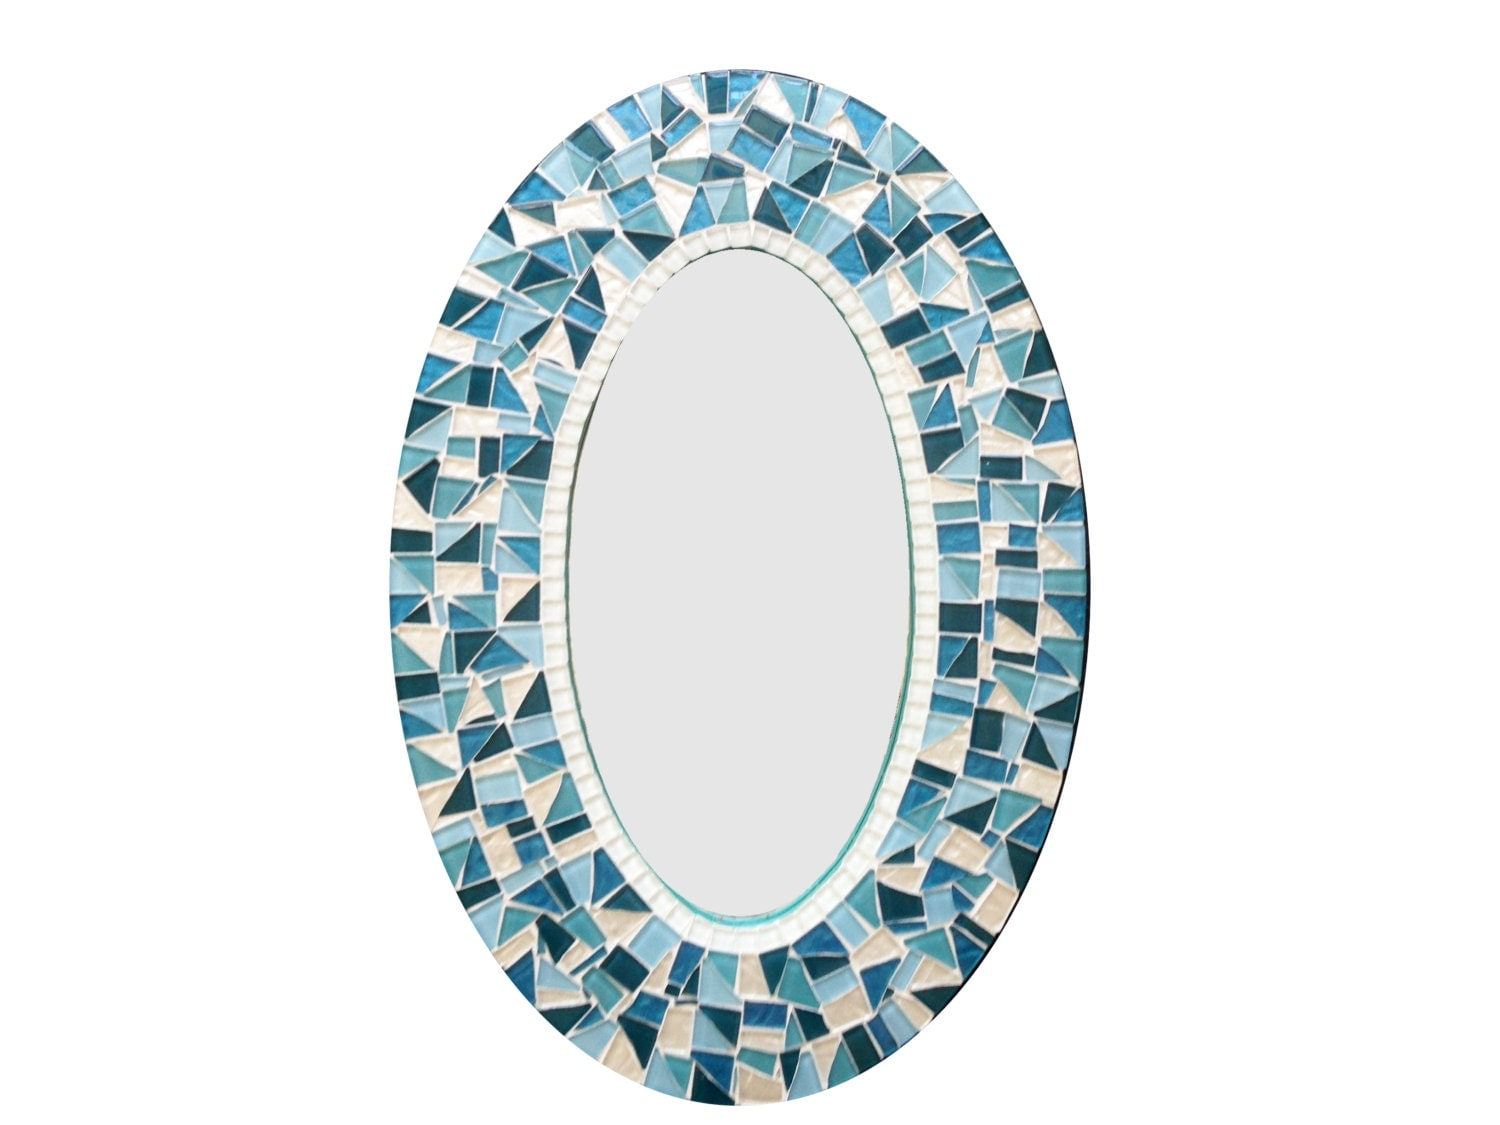 Oval Mosaic Wall Mirror In Teal Turquoise Aqua And White